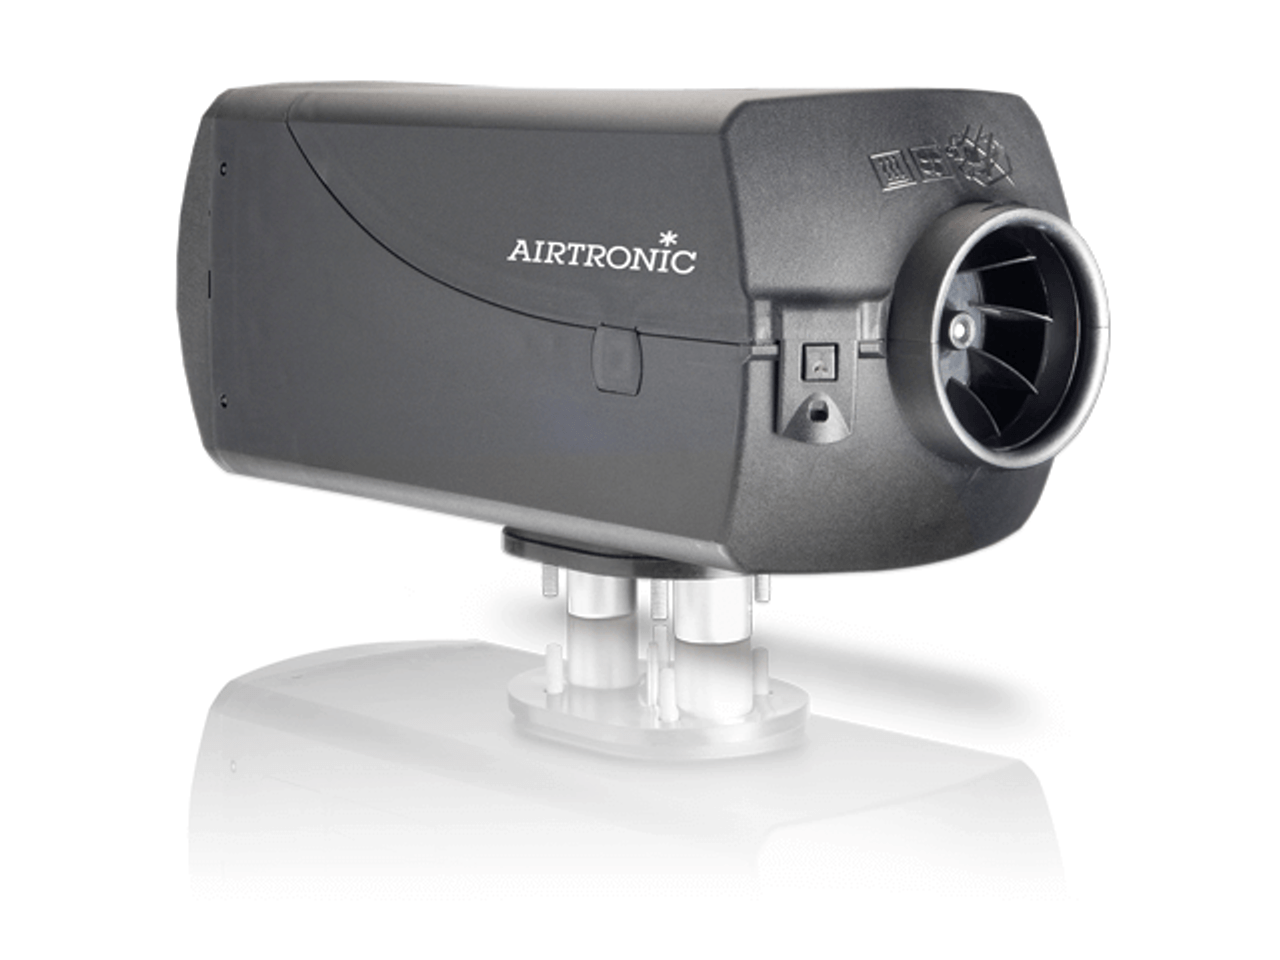 The Airtronic D2L diesel fuel heater from Eberspacher is small and powerful, ideal for your Volkswagen T5 T6 VW campervan